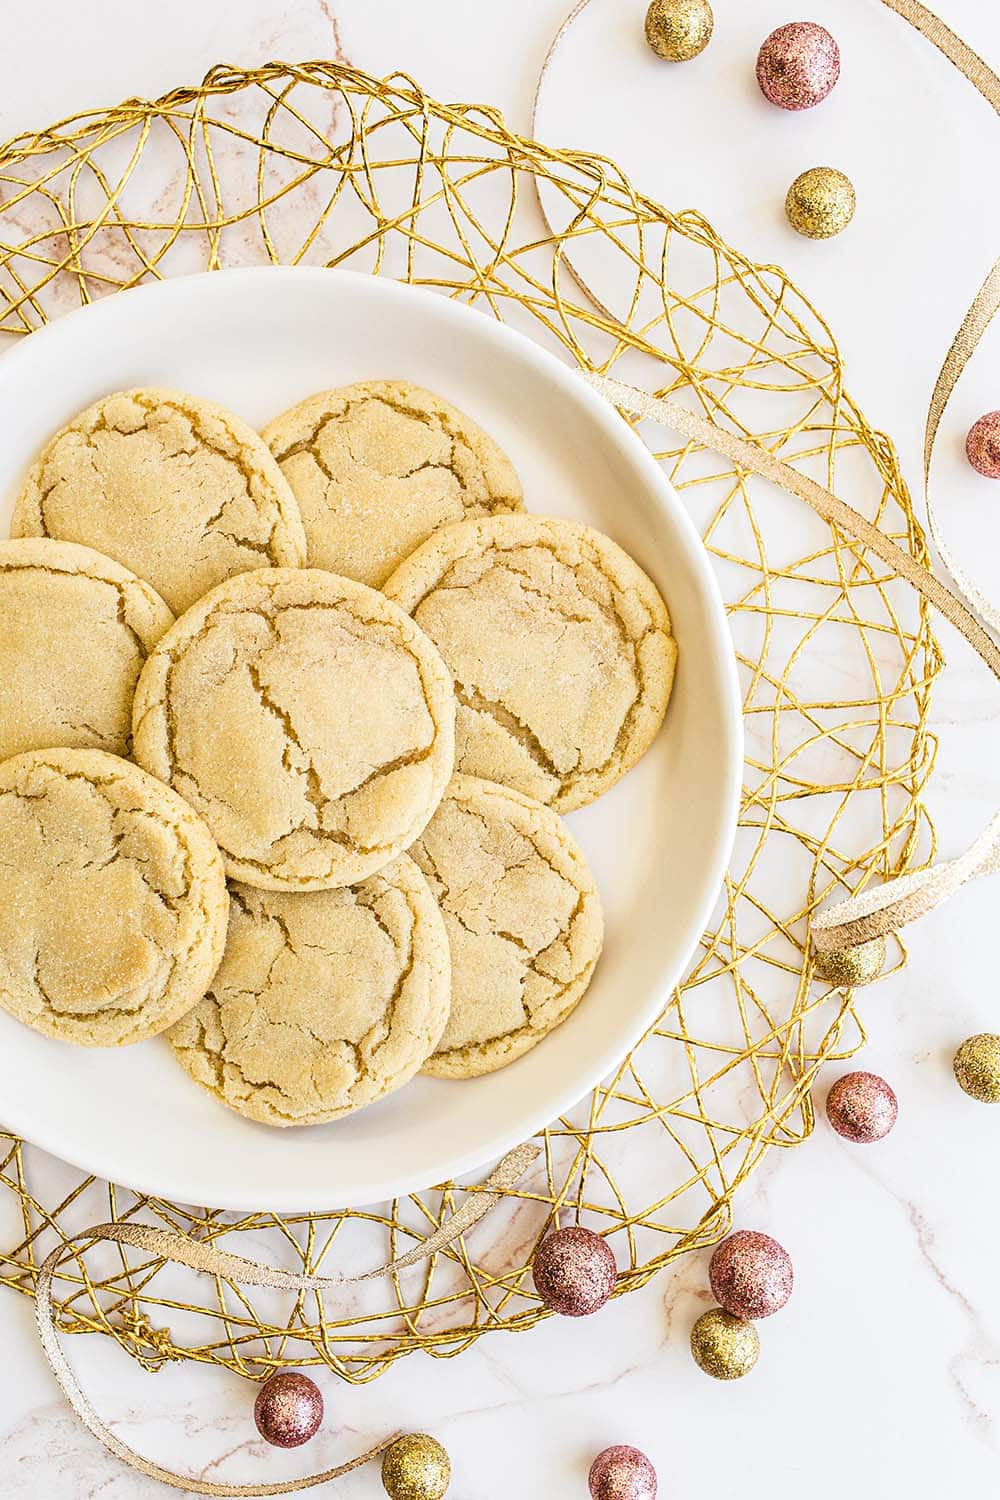 soft and chewy homemade sugar cookies on a plate with christmas ornaments surrounding